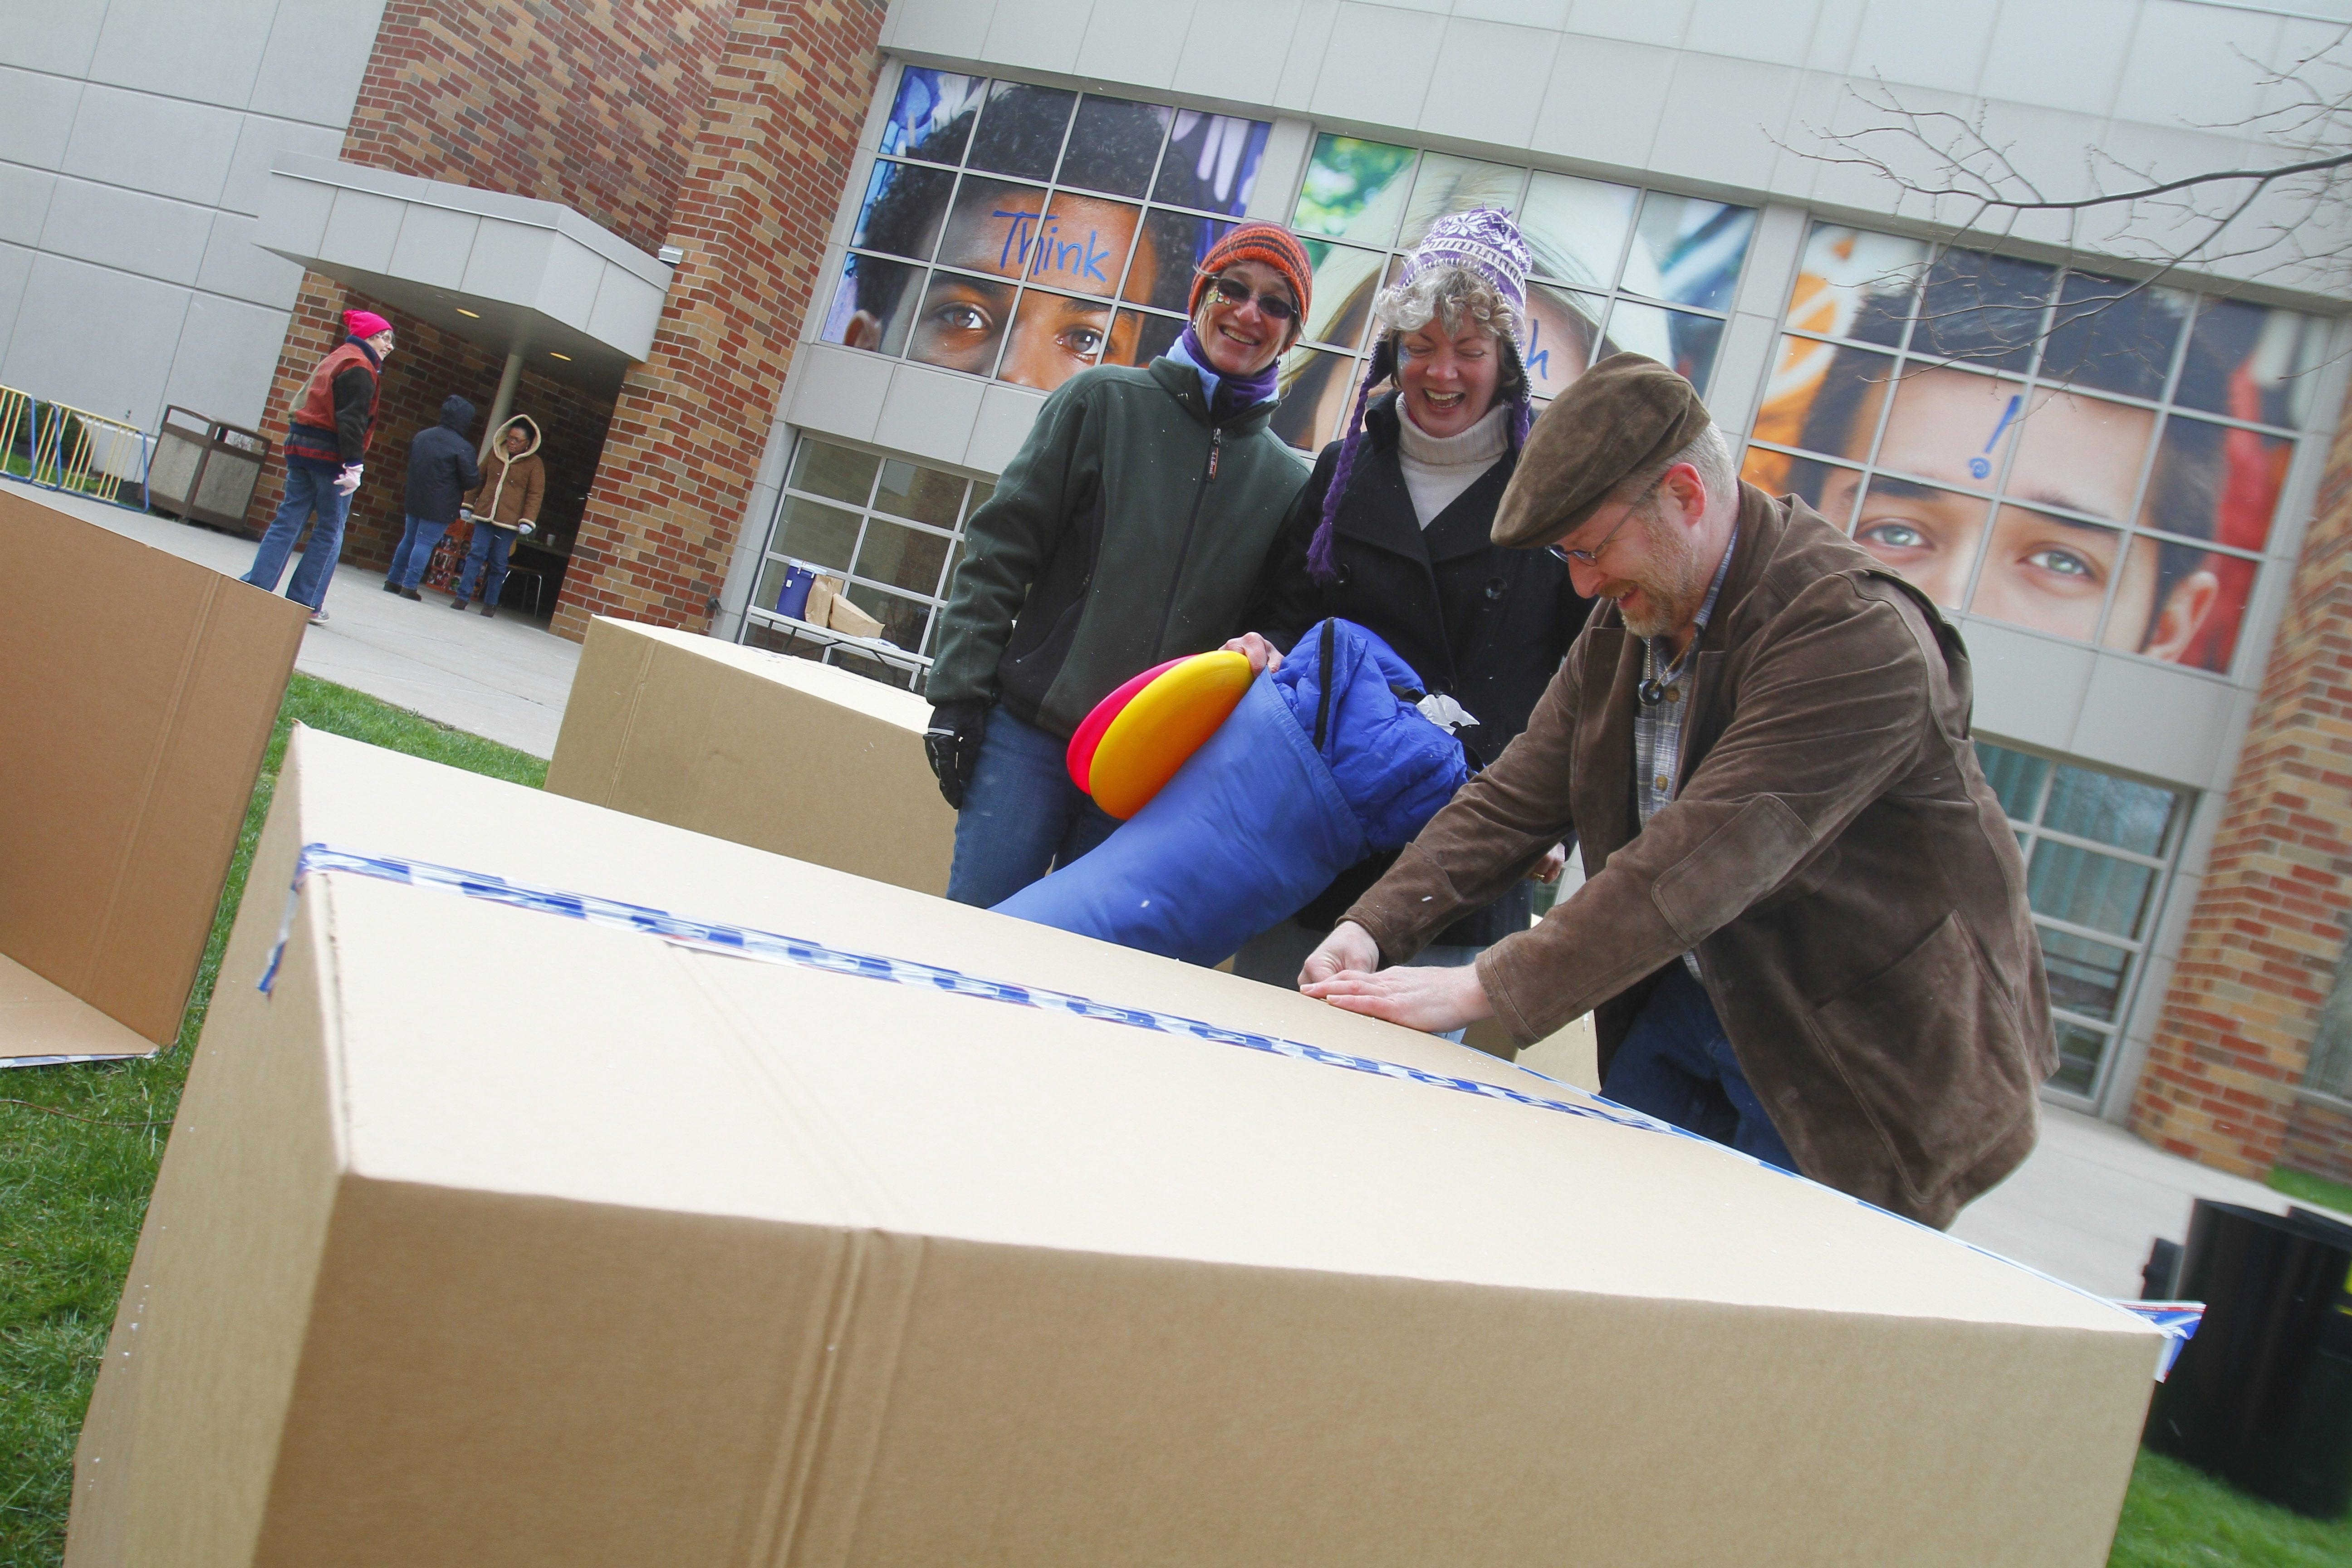 """Marilyn Sozanski, left, and Laura Genco of Family Promise, center, watch as Laura's brother-in-law, Charlie Genco, tapes up boxes Saturday at the fundraiser in """"Cardboard Box City"""" in Buffalo."""